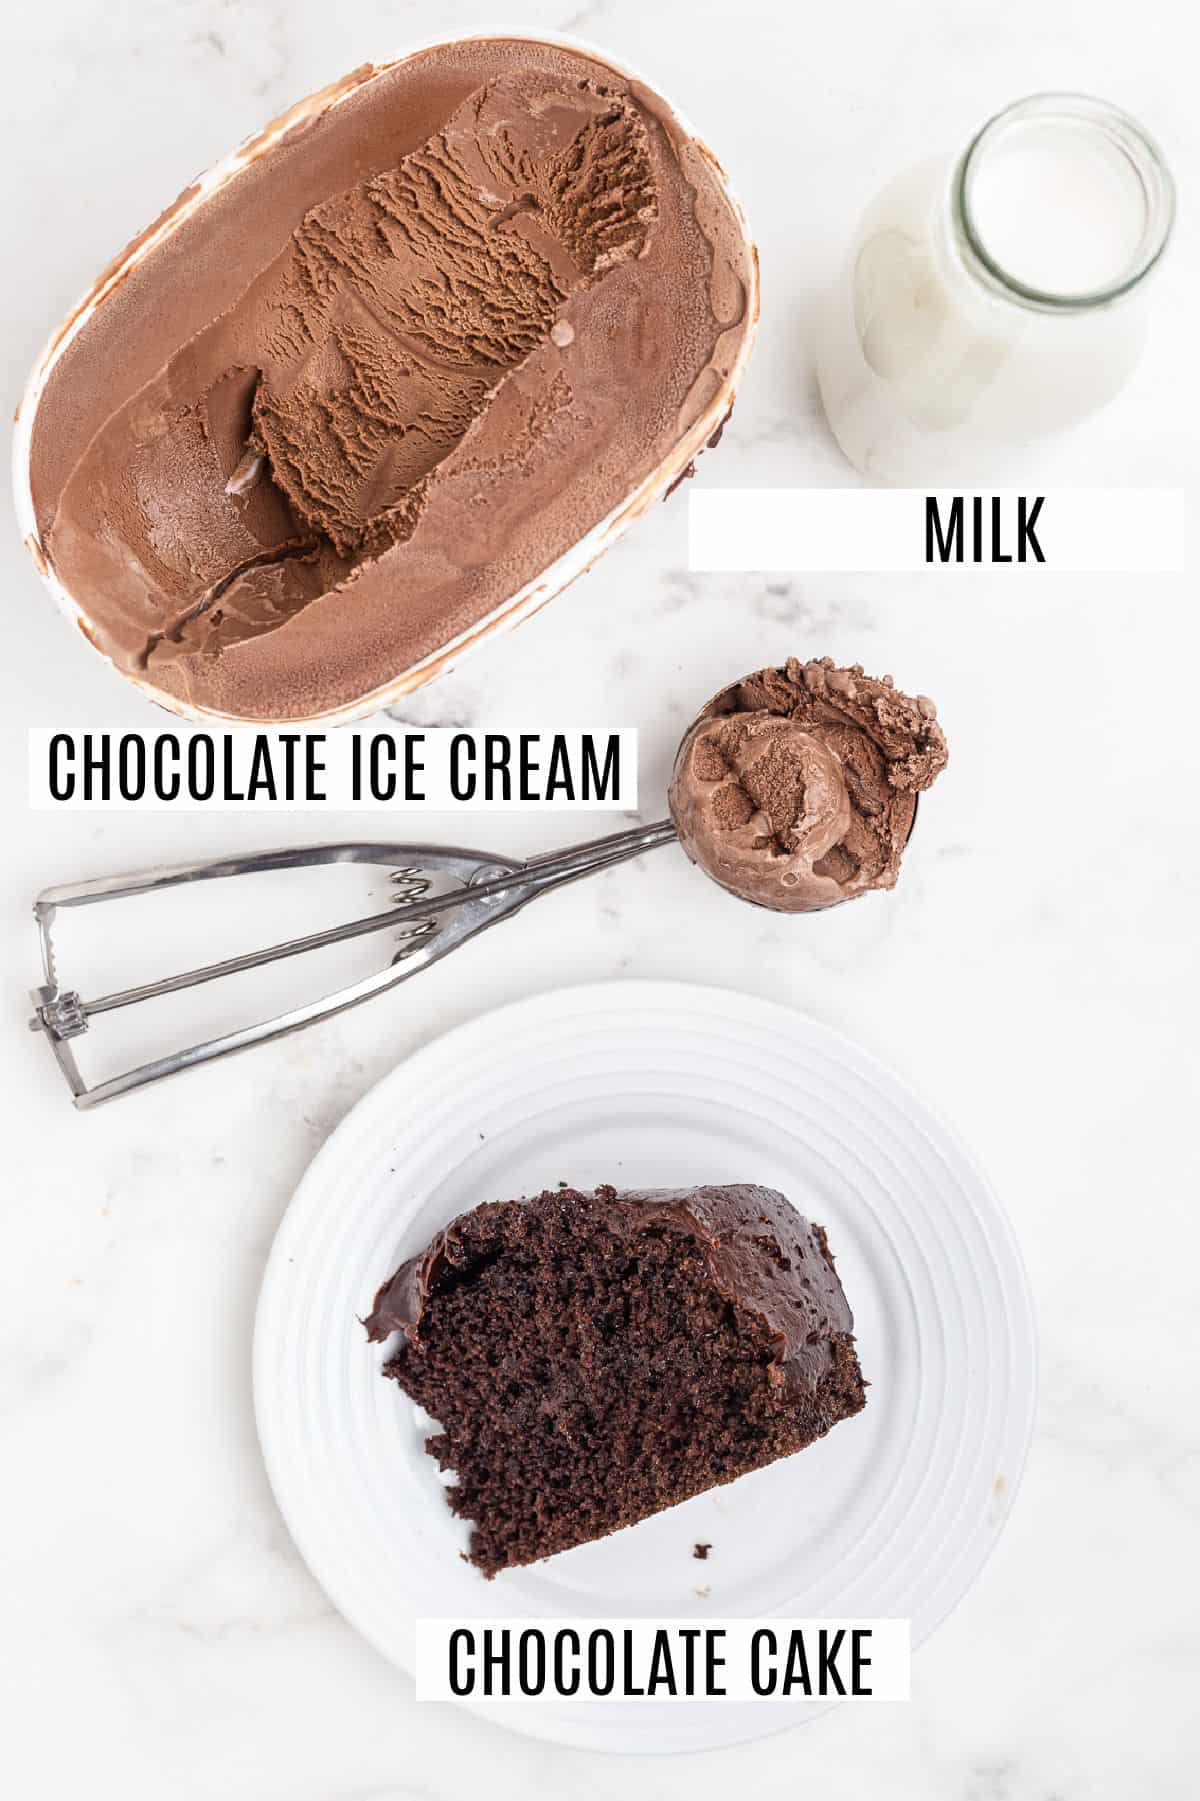 Only three ingredients needed for chocolate cake shakes.